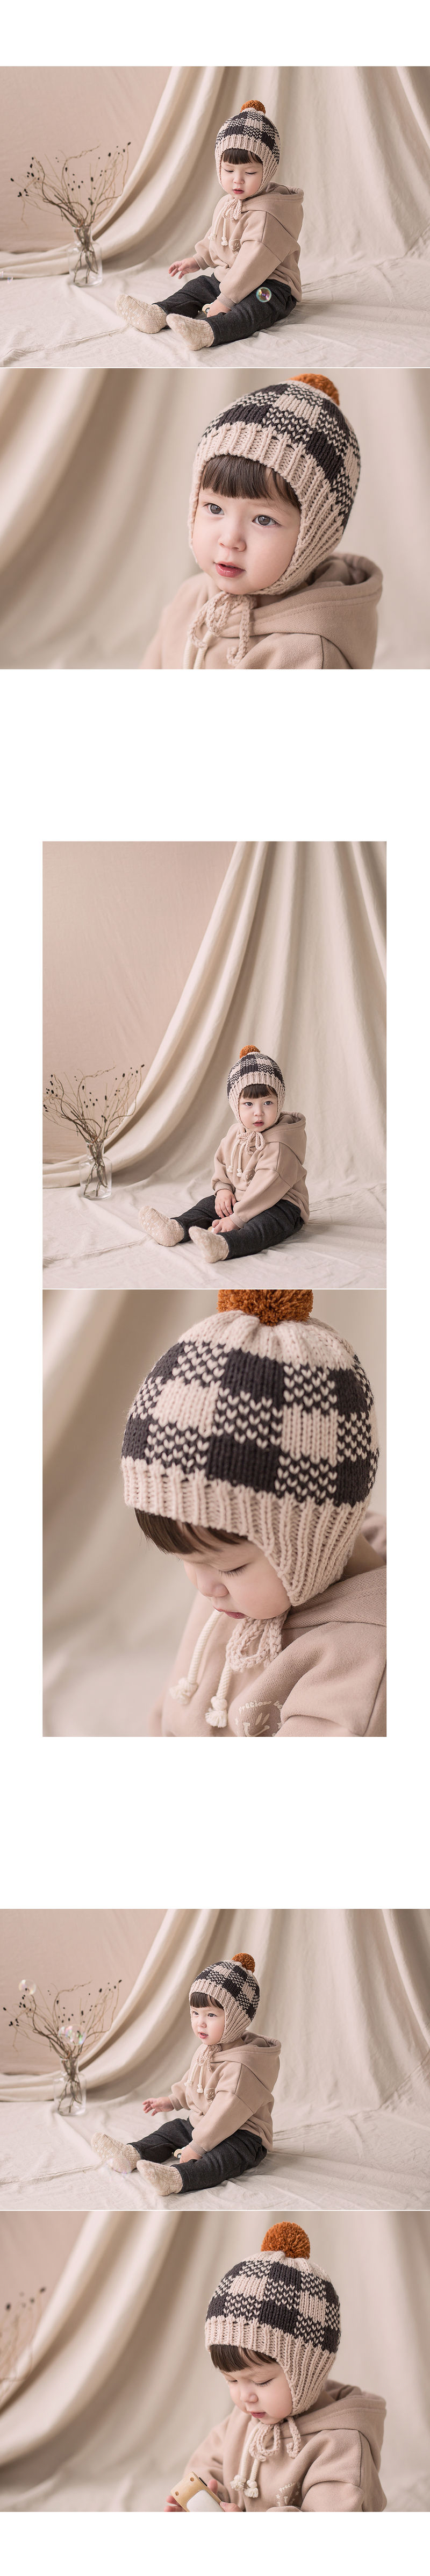 HAPPY PRINCE - Korean Children Fashion - #Kfashion4kids - Tomaen Pompom Woolly Hat - 4